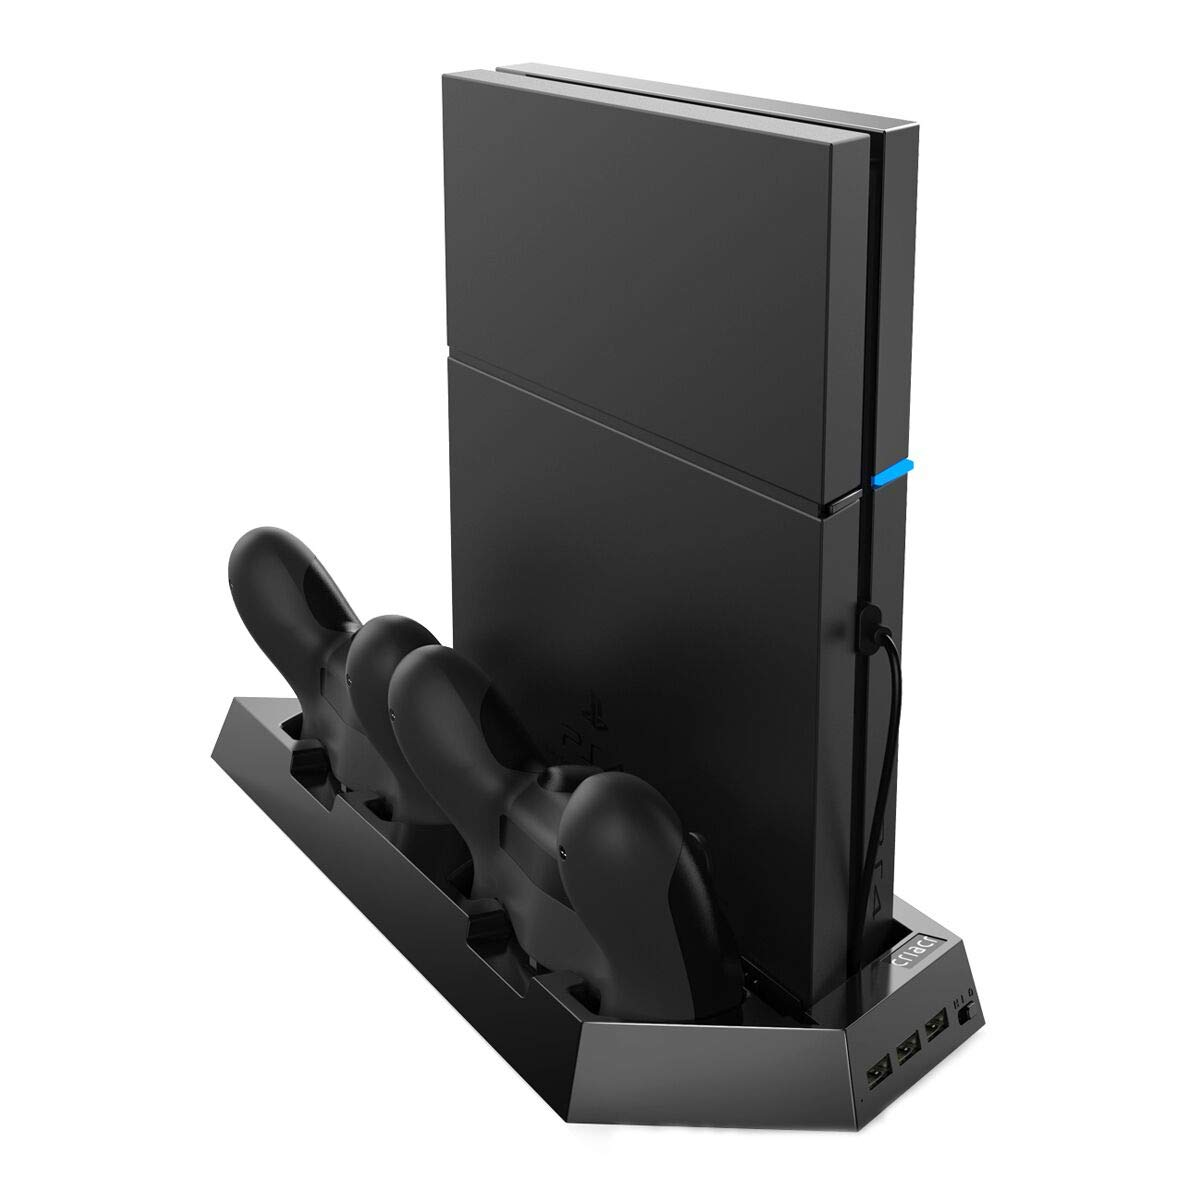 AMIR [New Version] Criacr PS4 Slim Vertical Stand with Cooling Fans,3-Port USB Hub for Sony Playstation 4/Slim,Space Saving Charging Station,with Dual Charger for DualShock 4 Wireless Controllers